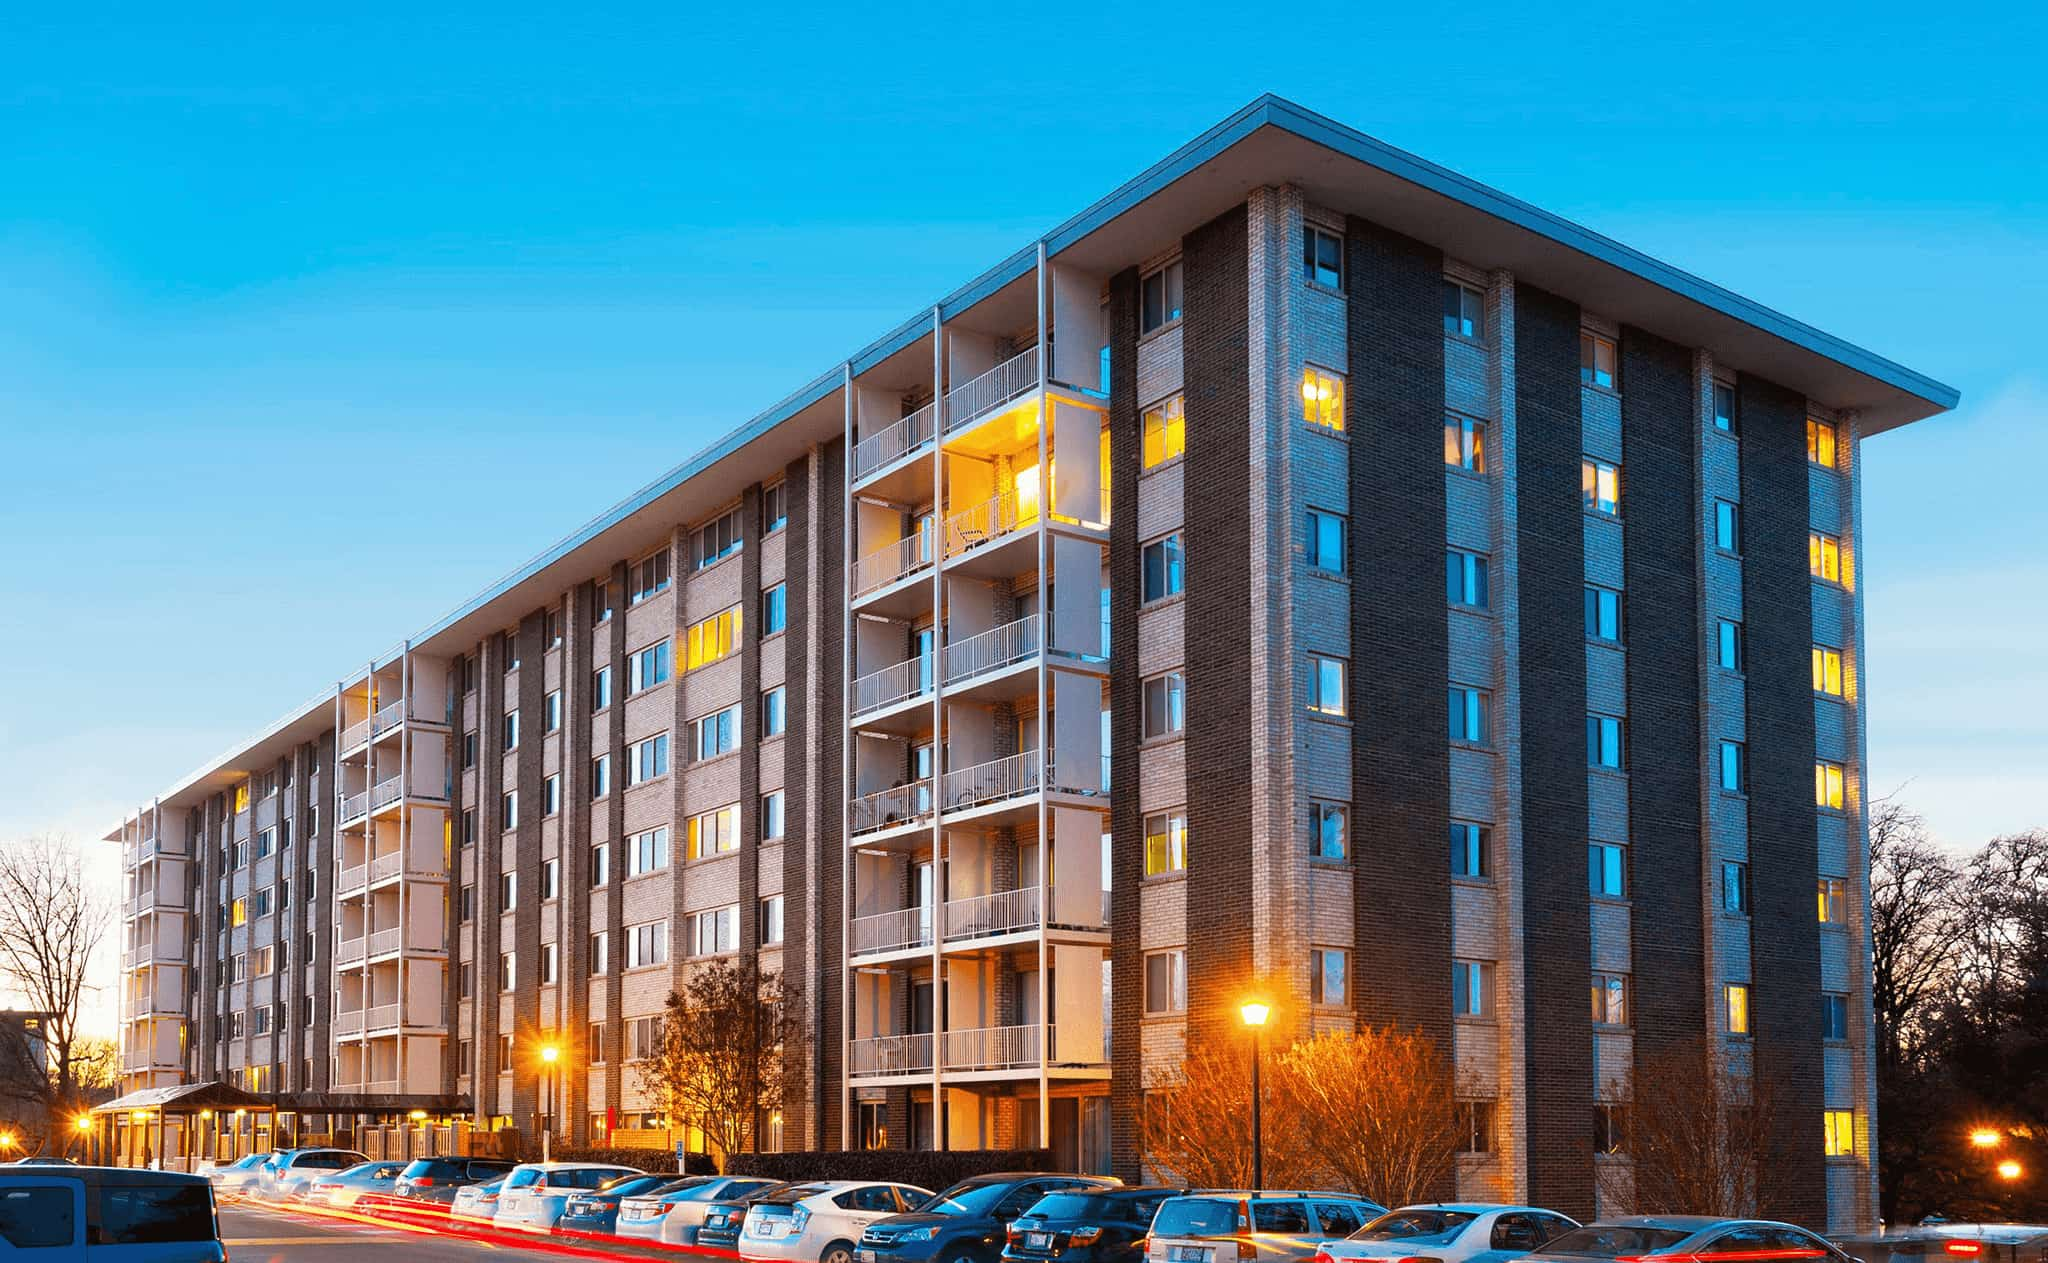 Congressional Towers Apartments exterior